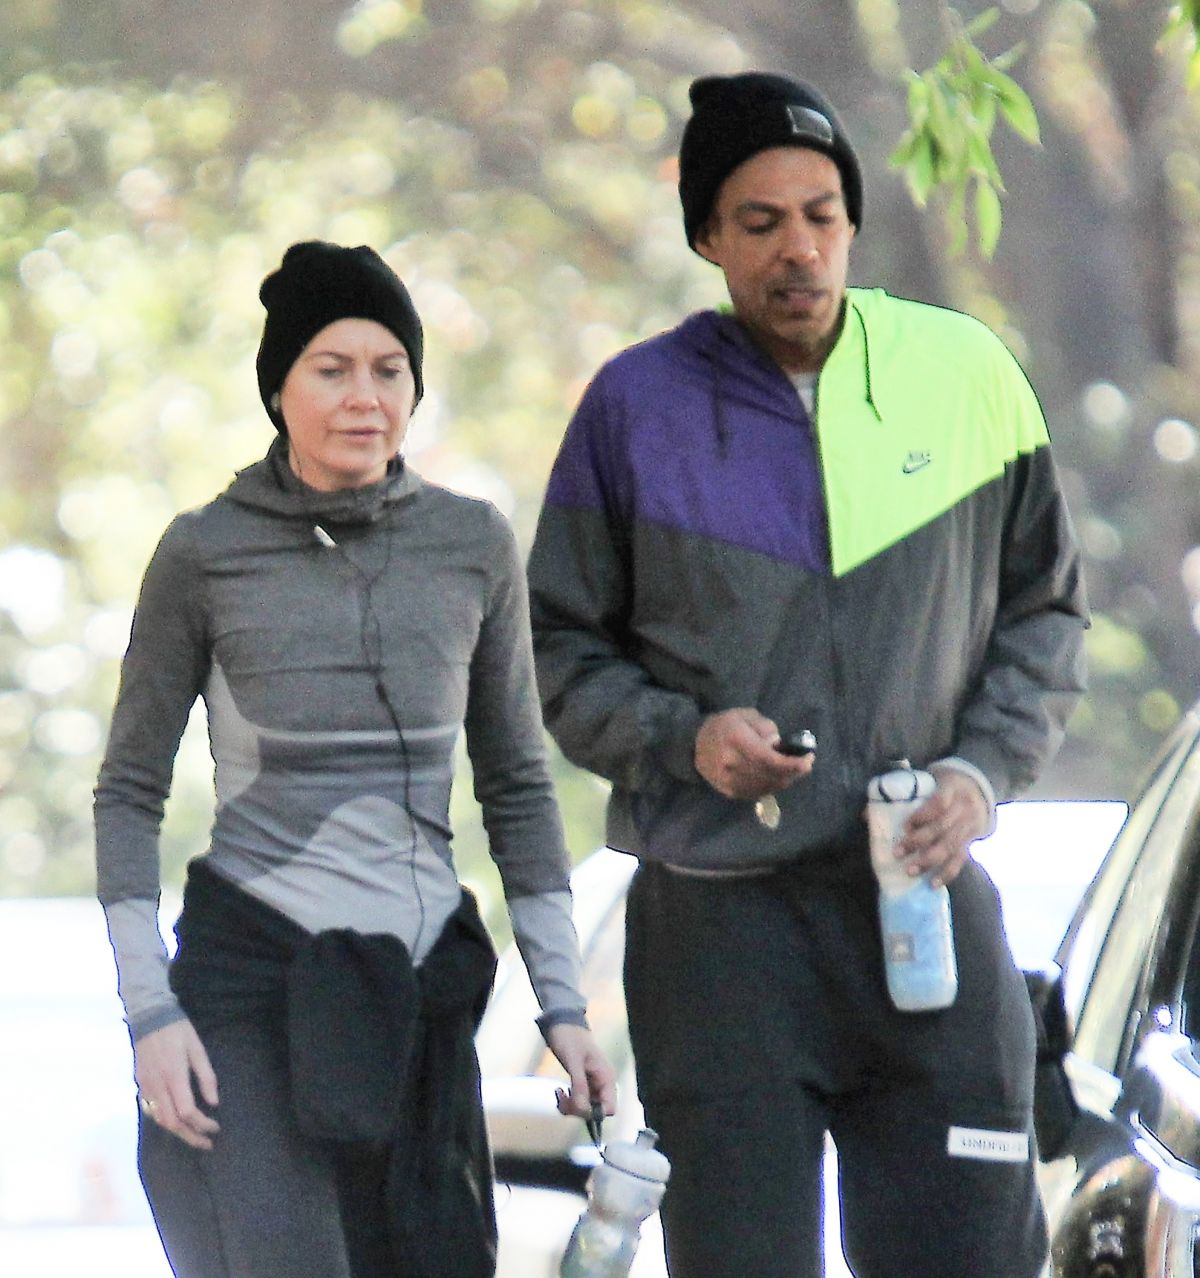 Ellen Pompeo Husband Ellen Pompeo Out Jogging With Her Husband Chris Ivery In Los Feliz